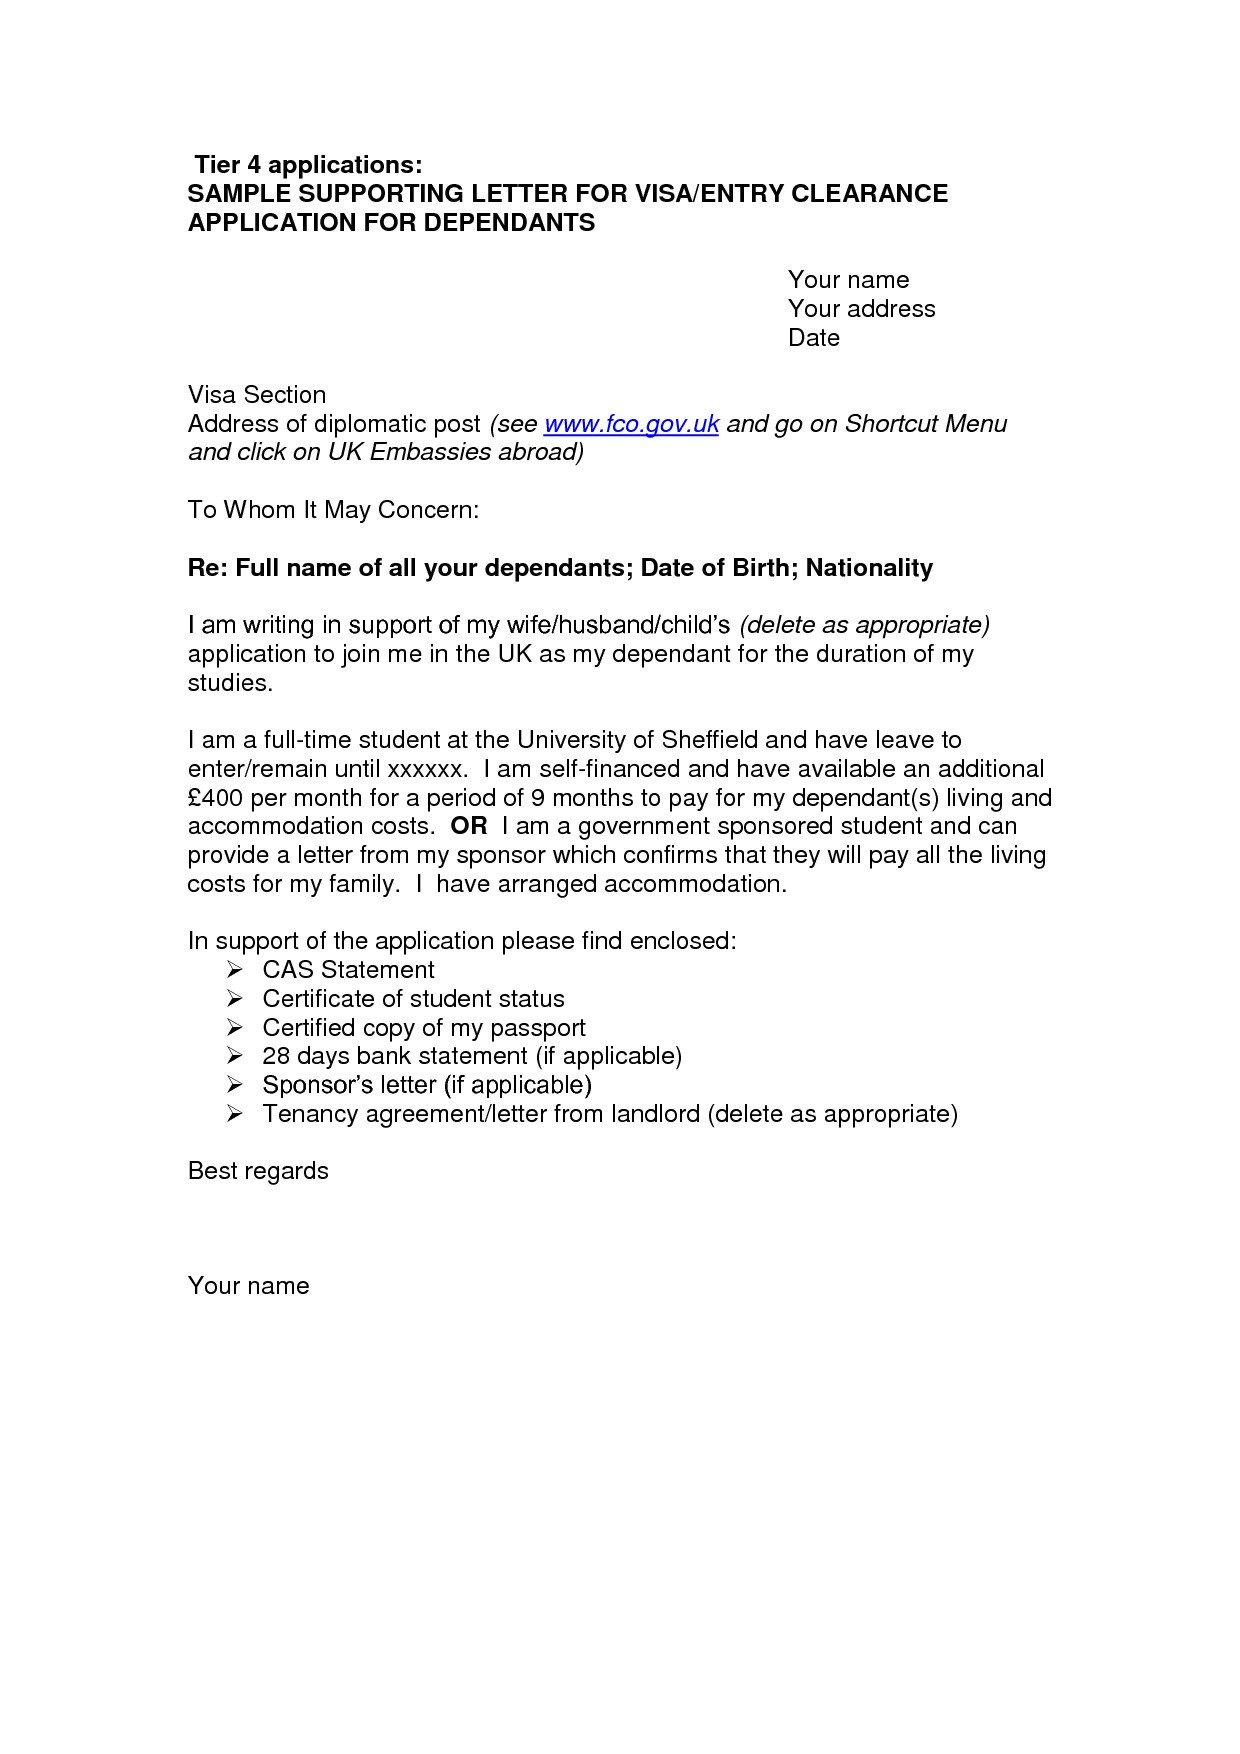 landlord agreement letter template example-Rent House Contract Letter Beautiful Copy Landlord Agreement Letter Template 10-k